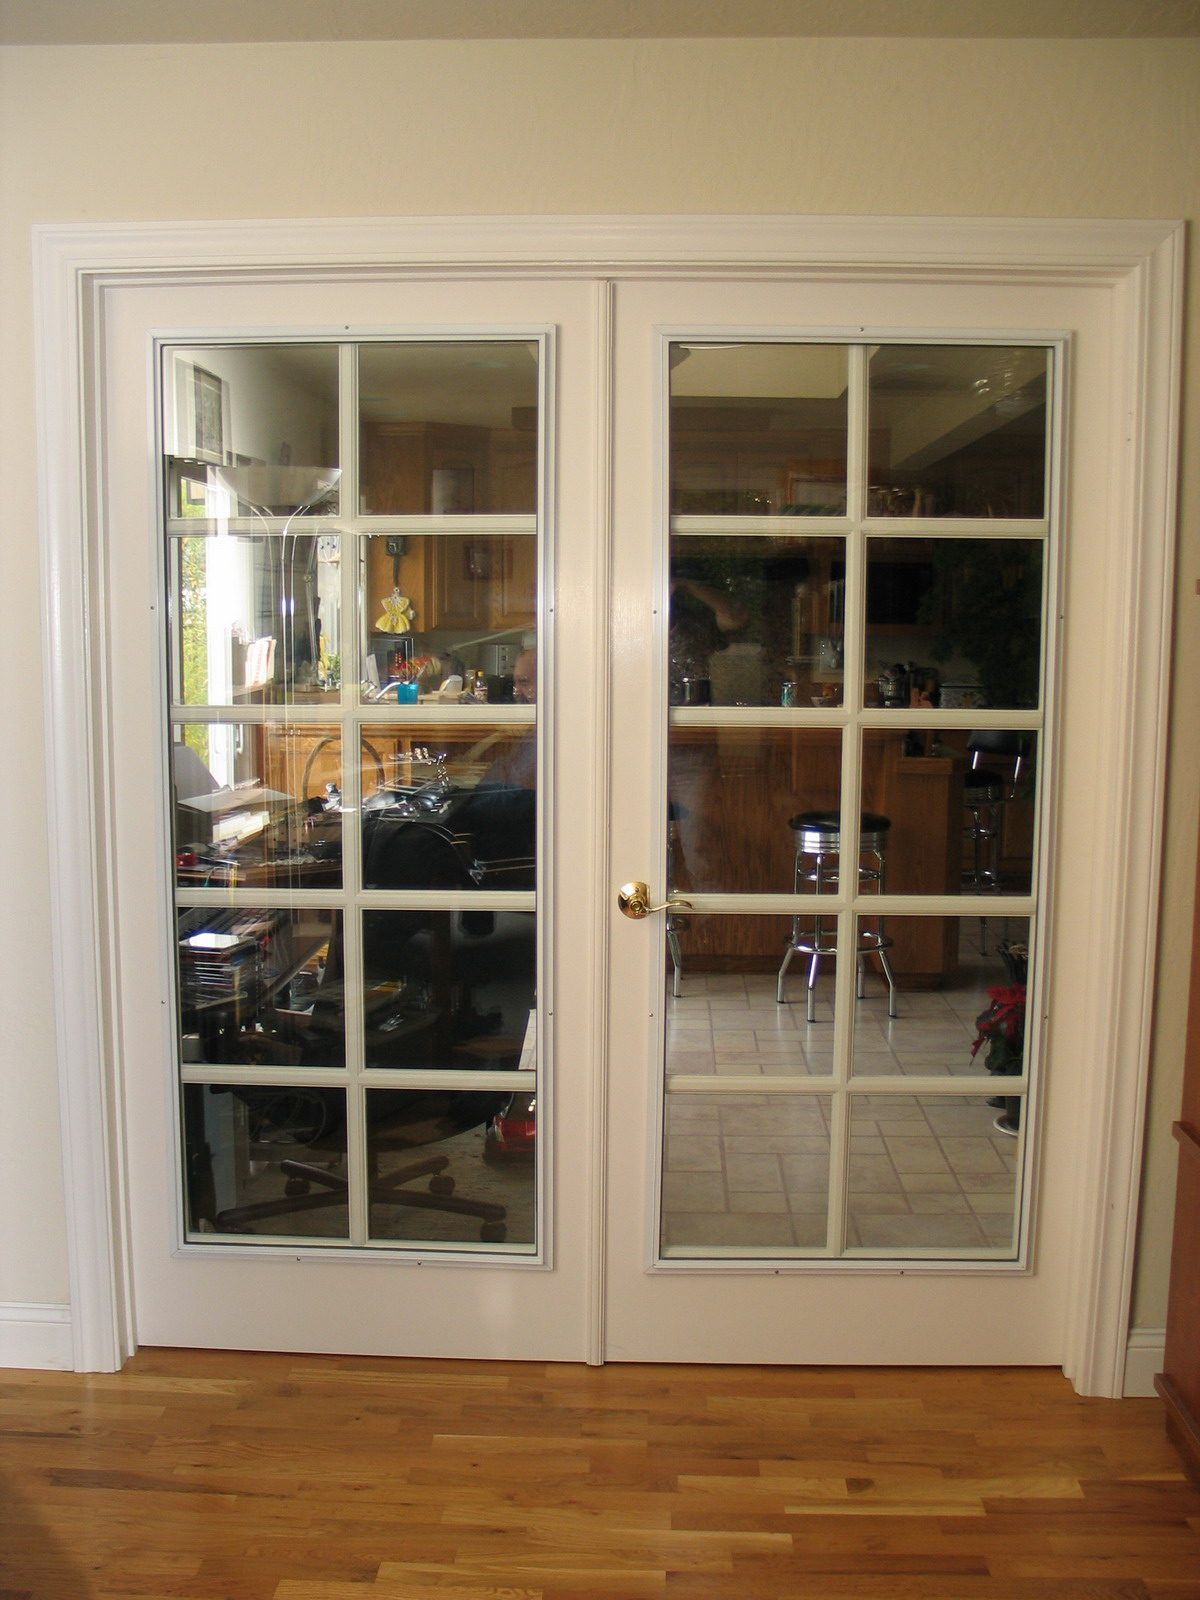 Doors panels 4 panel white interior doors interior door for Interior glass french doors